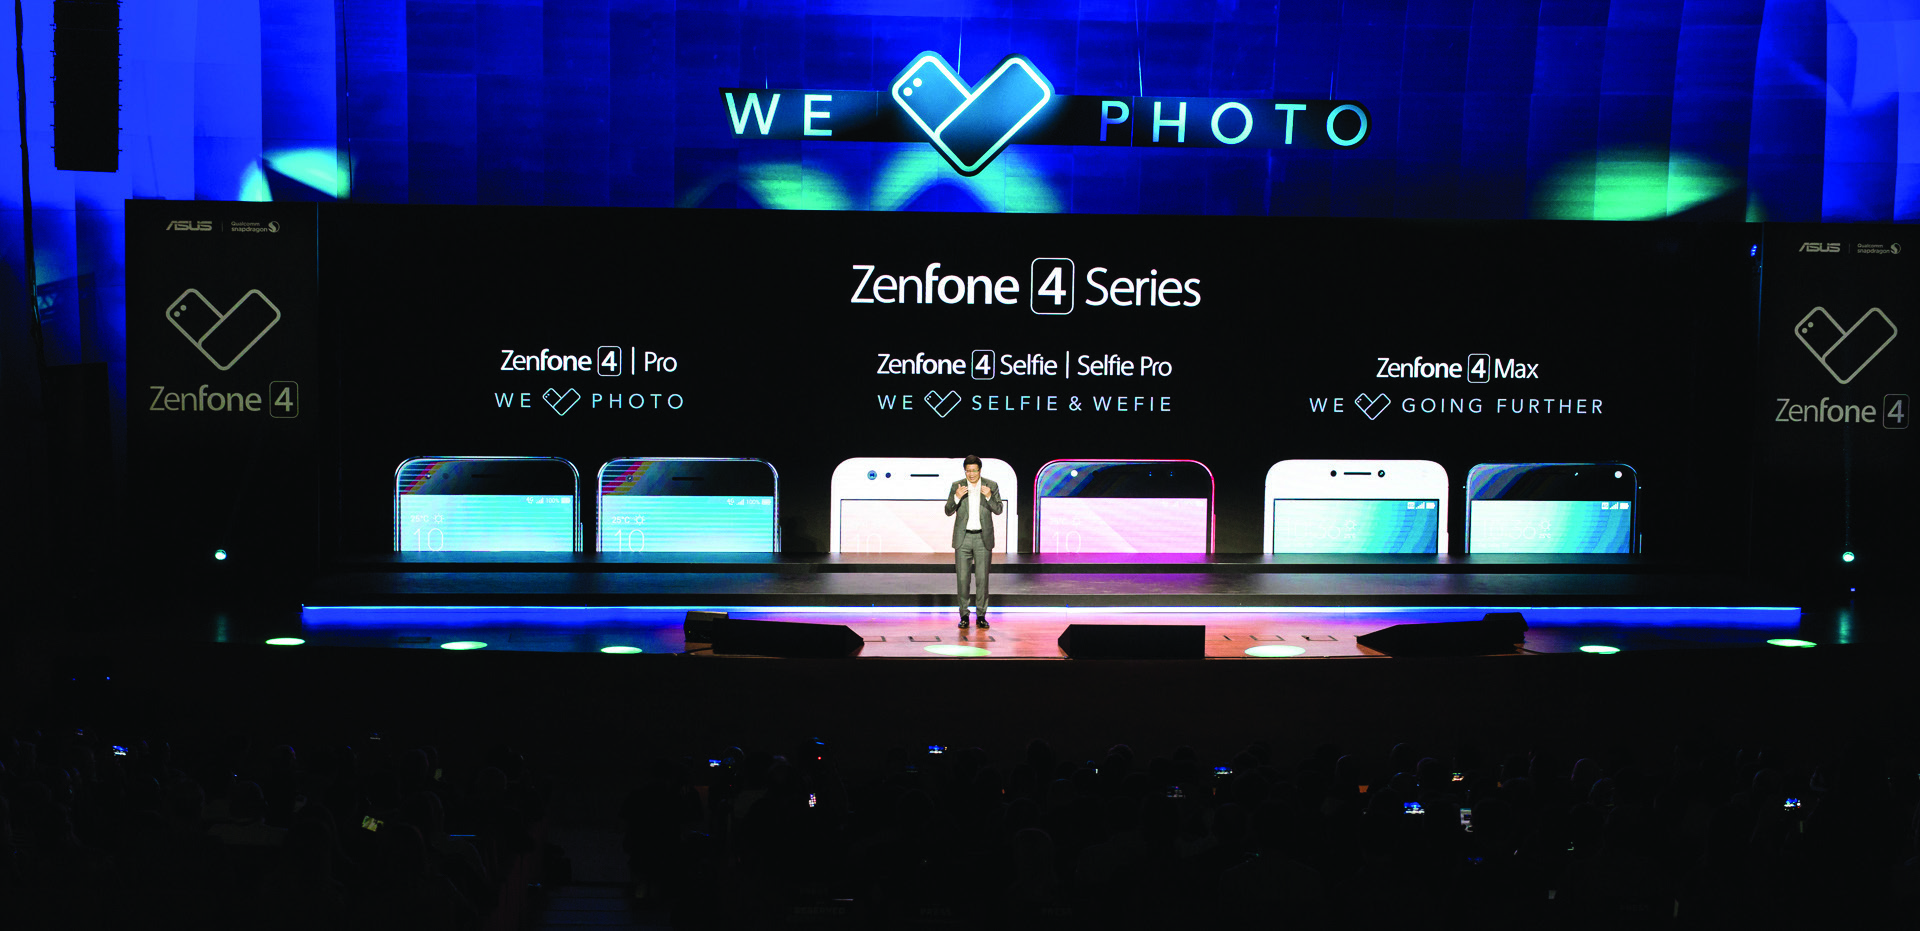 we-love-photo-lancio-europeo-smartphone-zenfone-4-gruppo-peroni-eventi-23